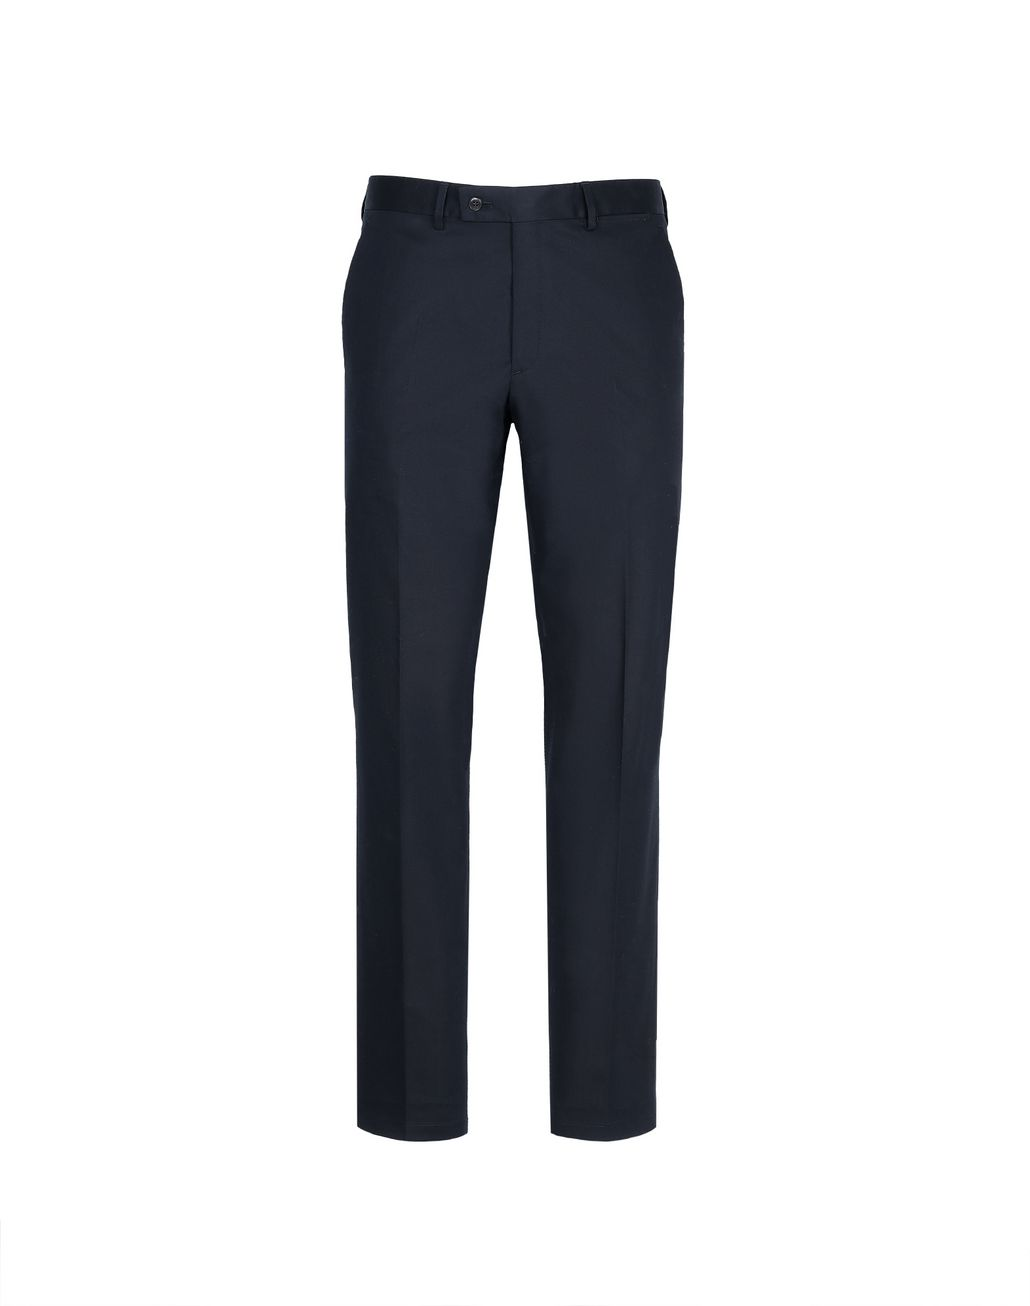 BRIONI Dark Blue Tignes Chino Trousers Trousers Man f